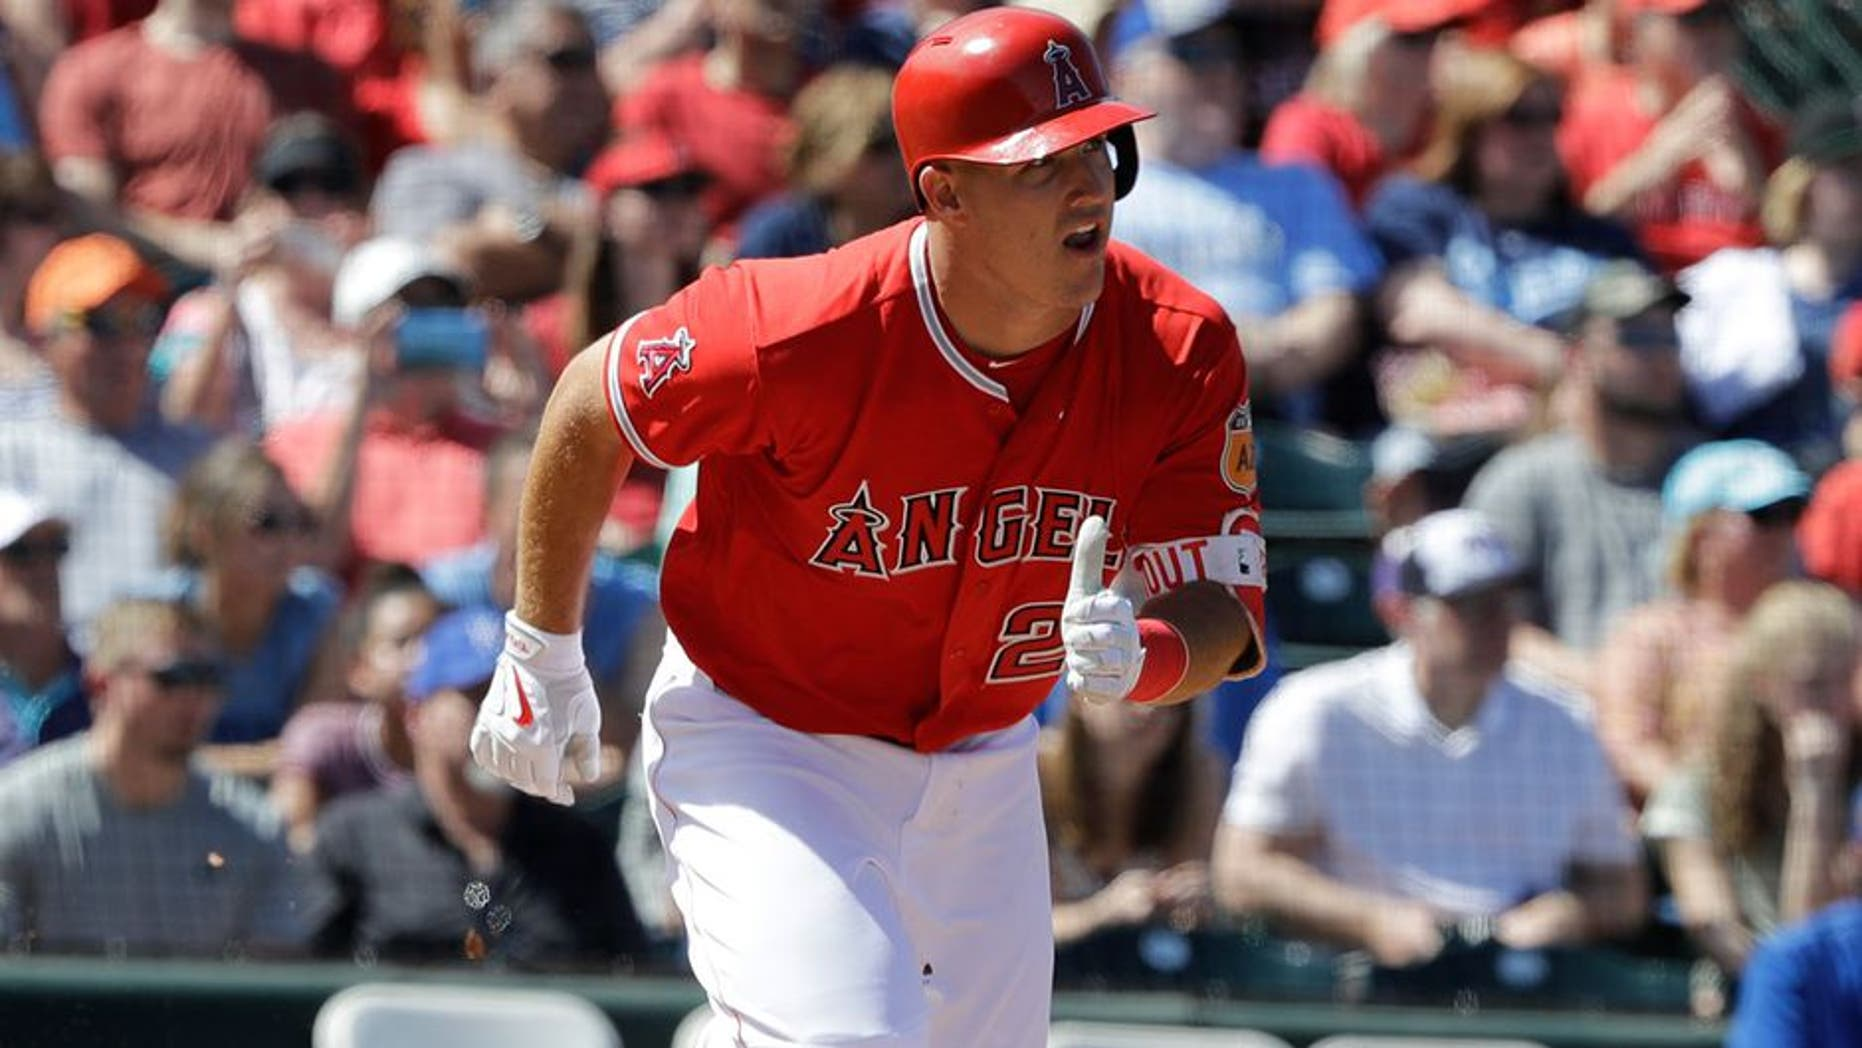 Los Angeles Angels' Mike Trout hits during a spring training baseball game against the Kansas City Royals, Sunday, March 26, 2017, in Tempe, Ariz. (AP Photo/Darron Cummings)